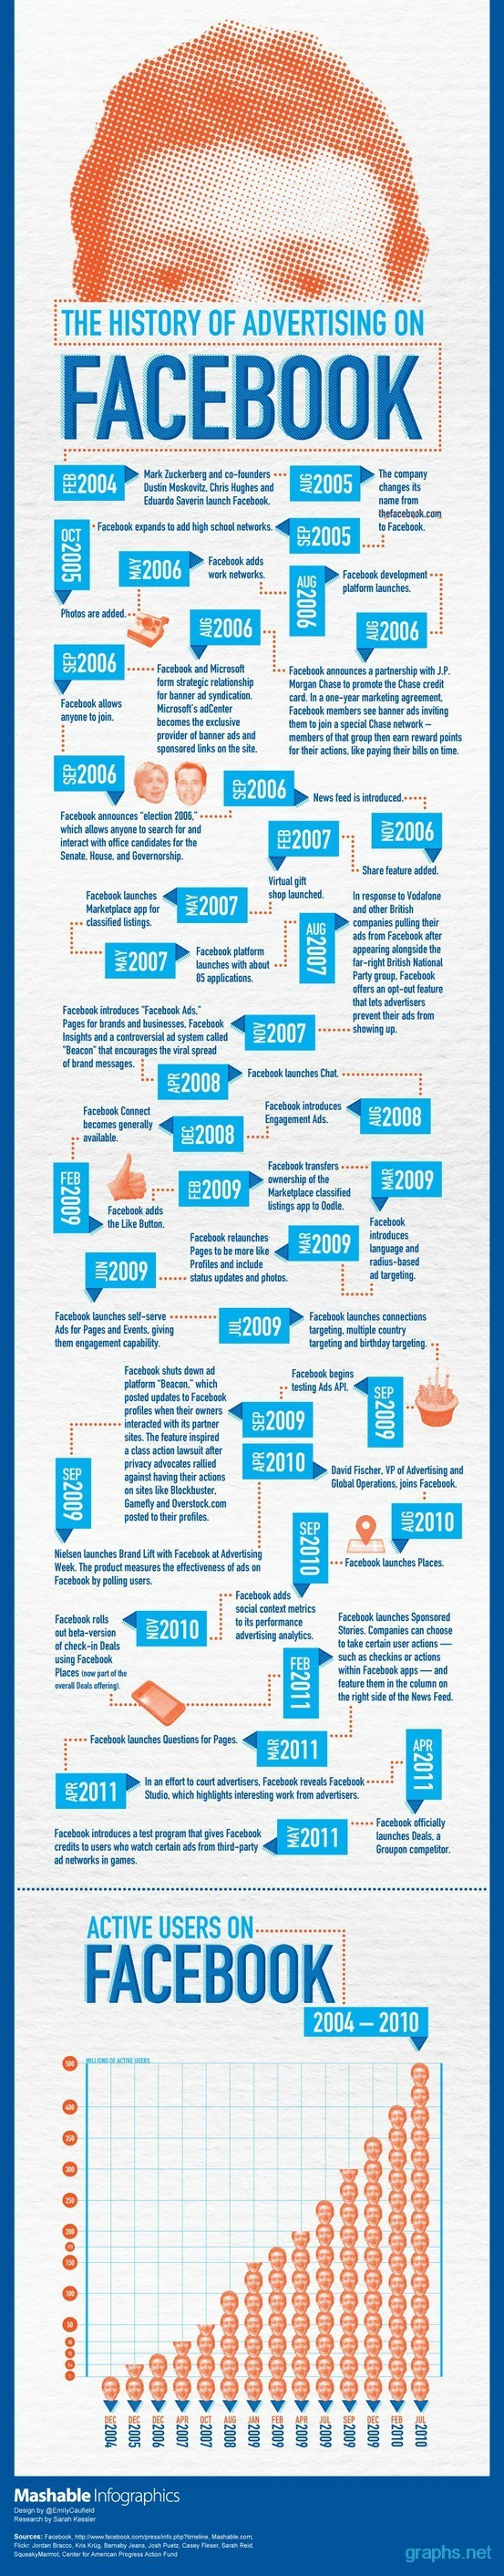 Facebook Advertising History and Timeline